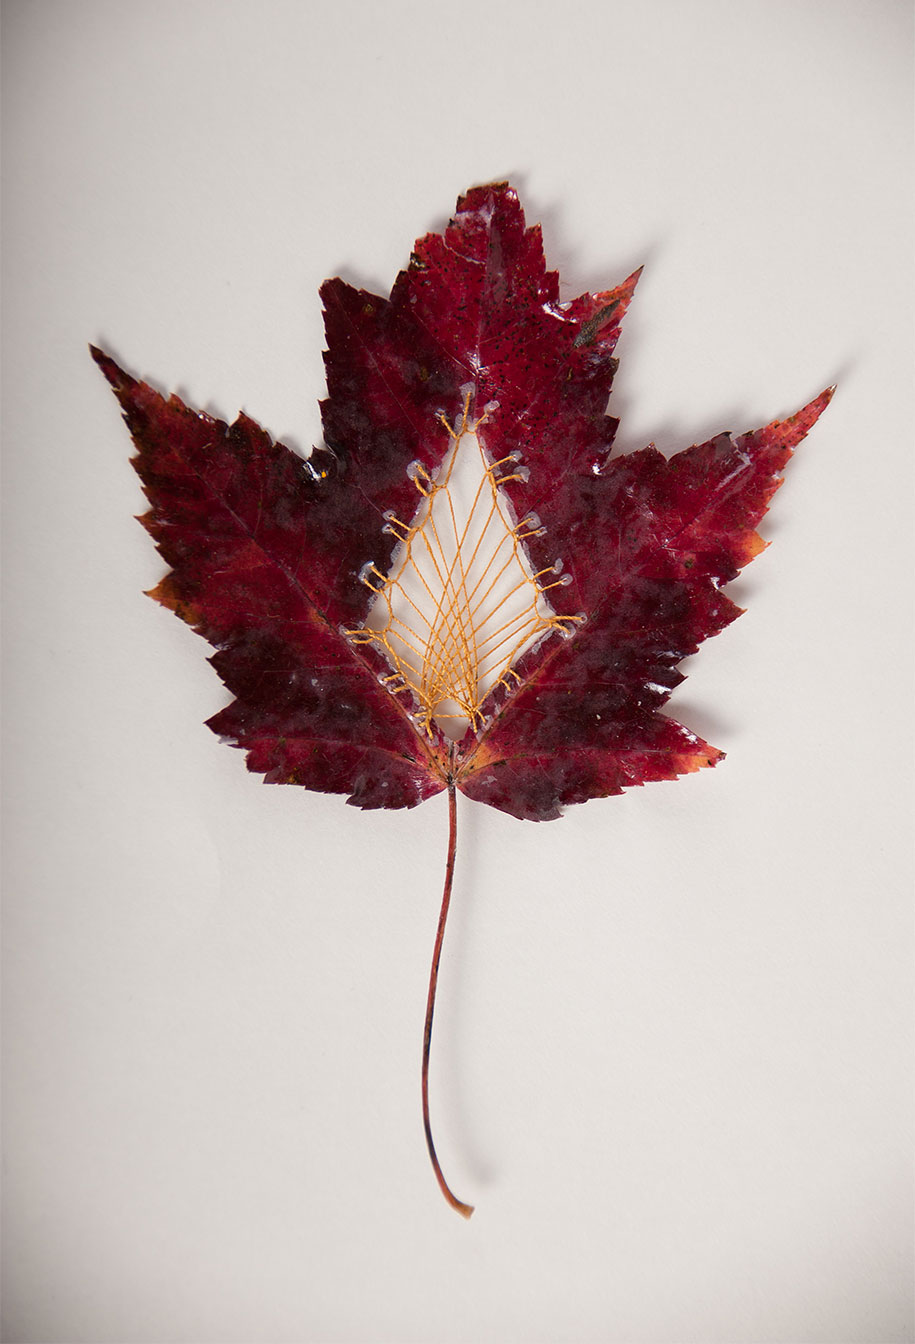 embroidery-art-stitched-leaves-hillary-fayle-15